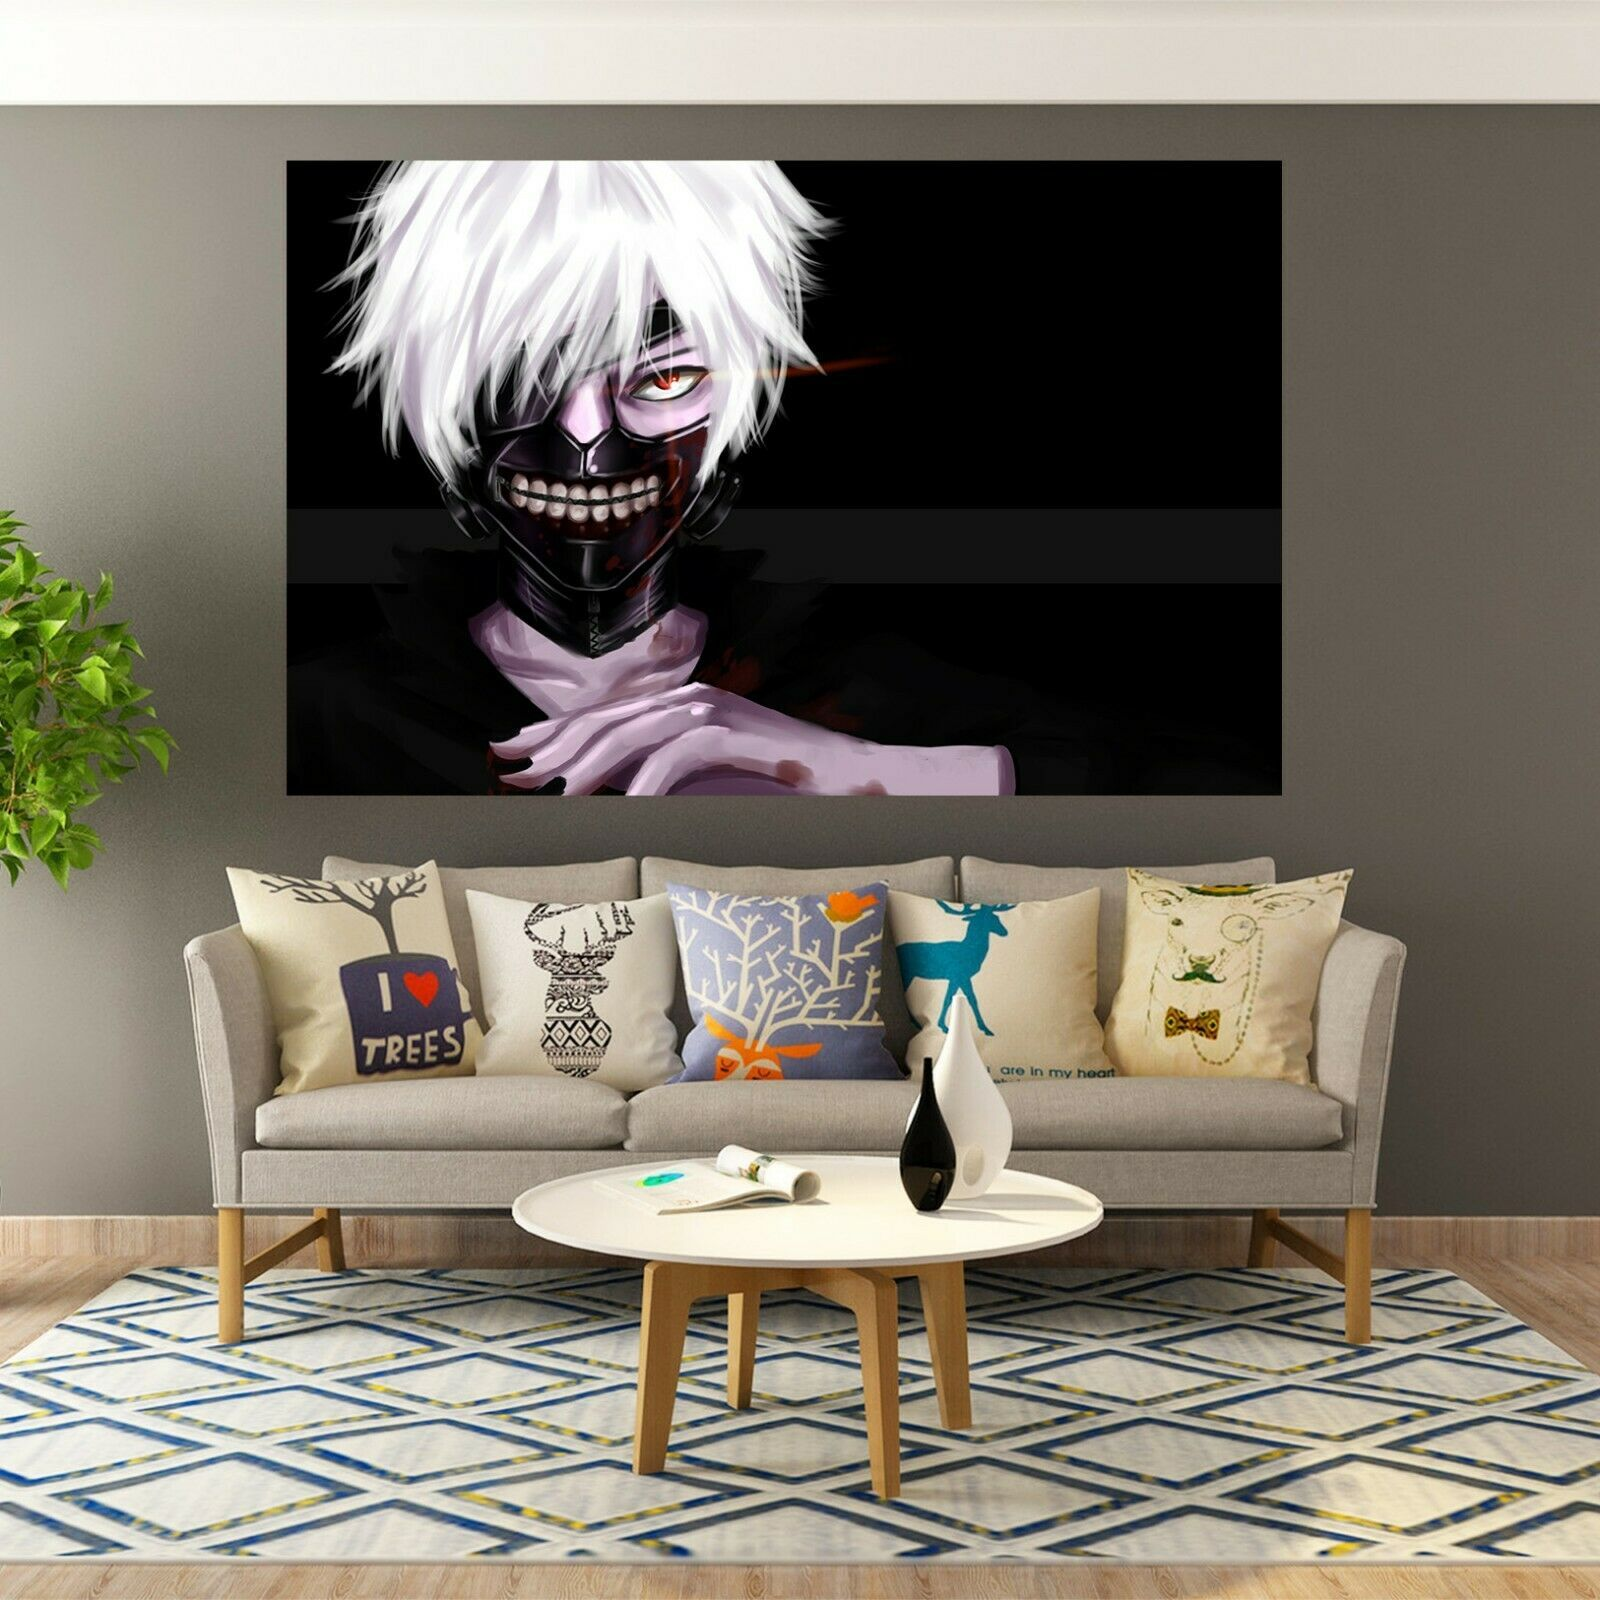 3D Tokyo Ghoul Avatar D159 Japan Anime Wall Stickers Wall Mural Decals Wendy - $19.22 - $149.94